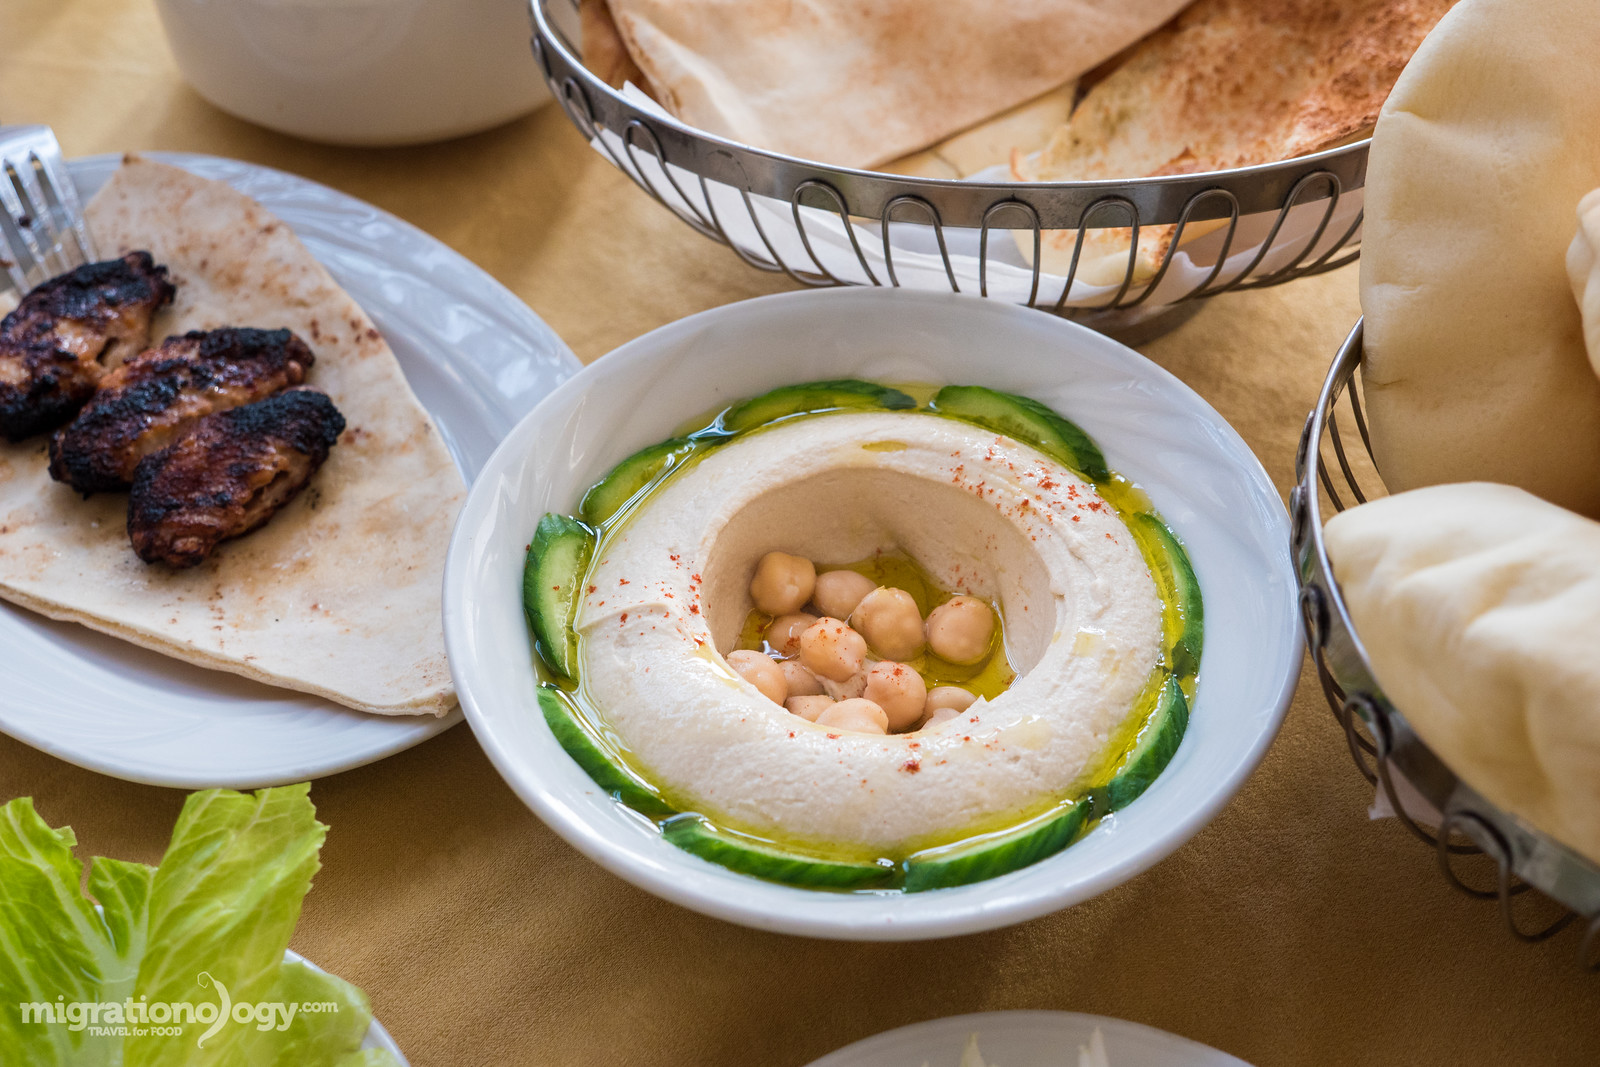 jordanian food: 25 of the best dishes you should eat